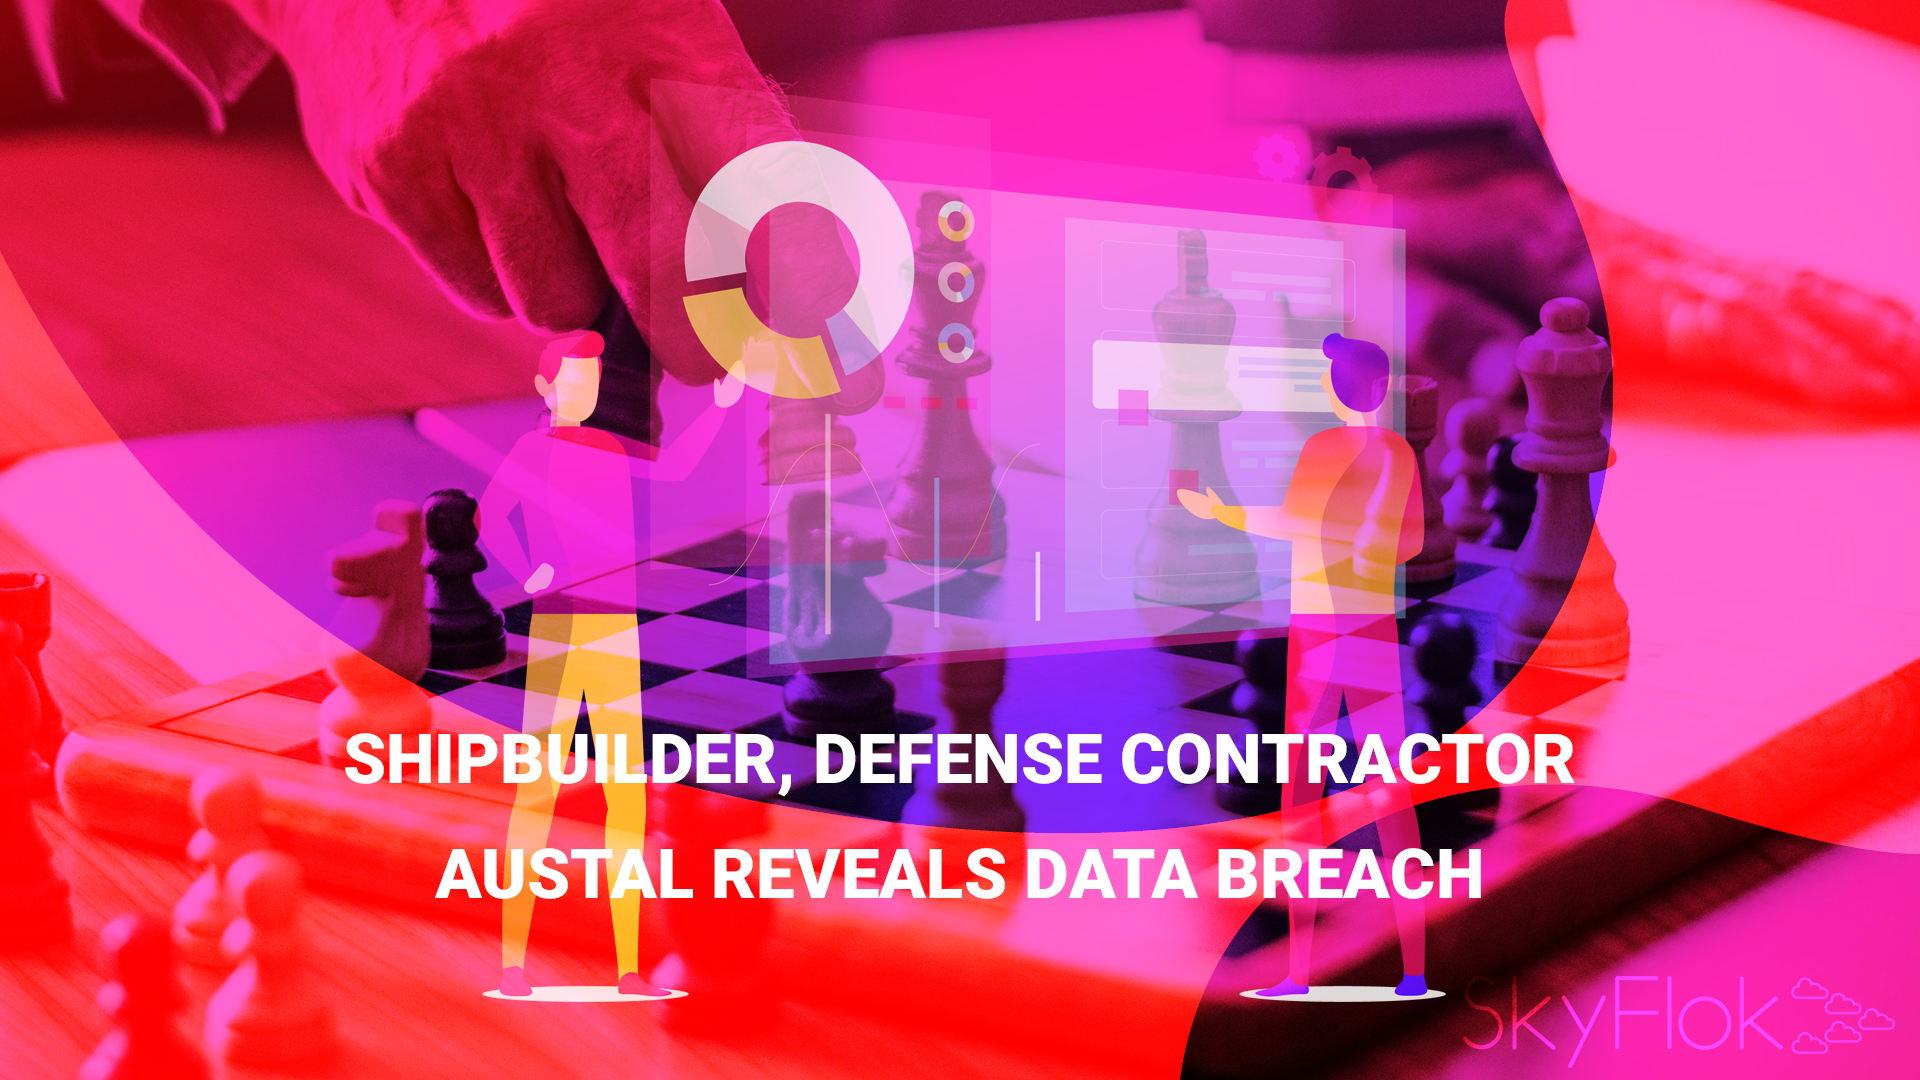 Shipbuilder, defense contractor Austal reveals data breach